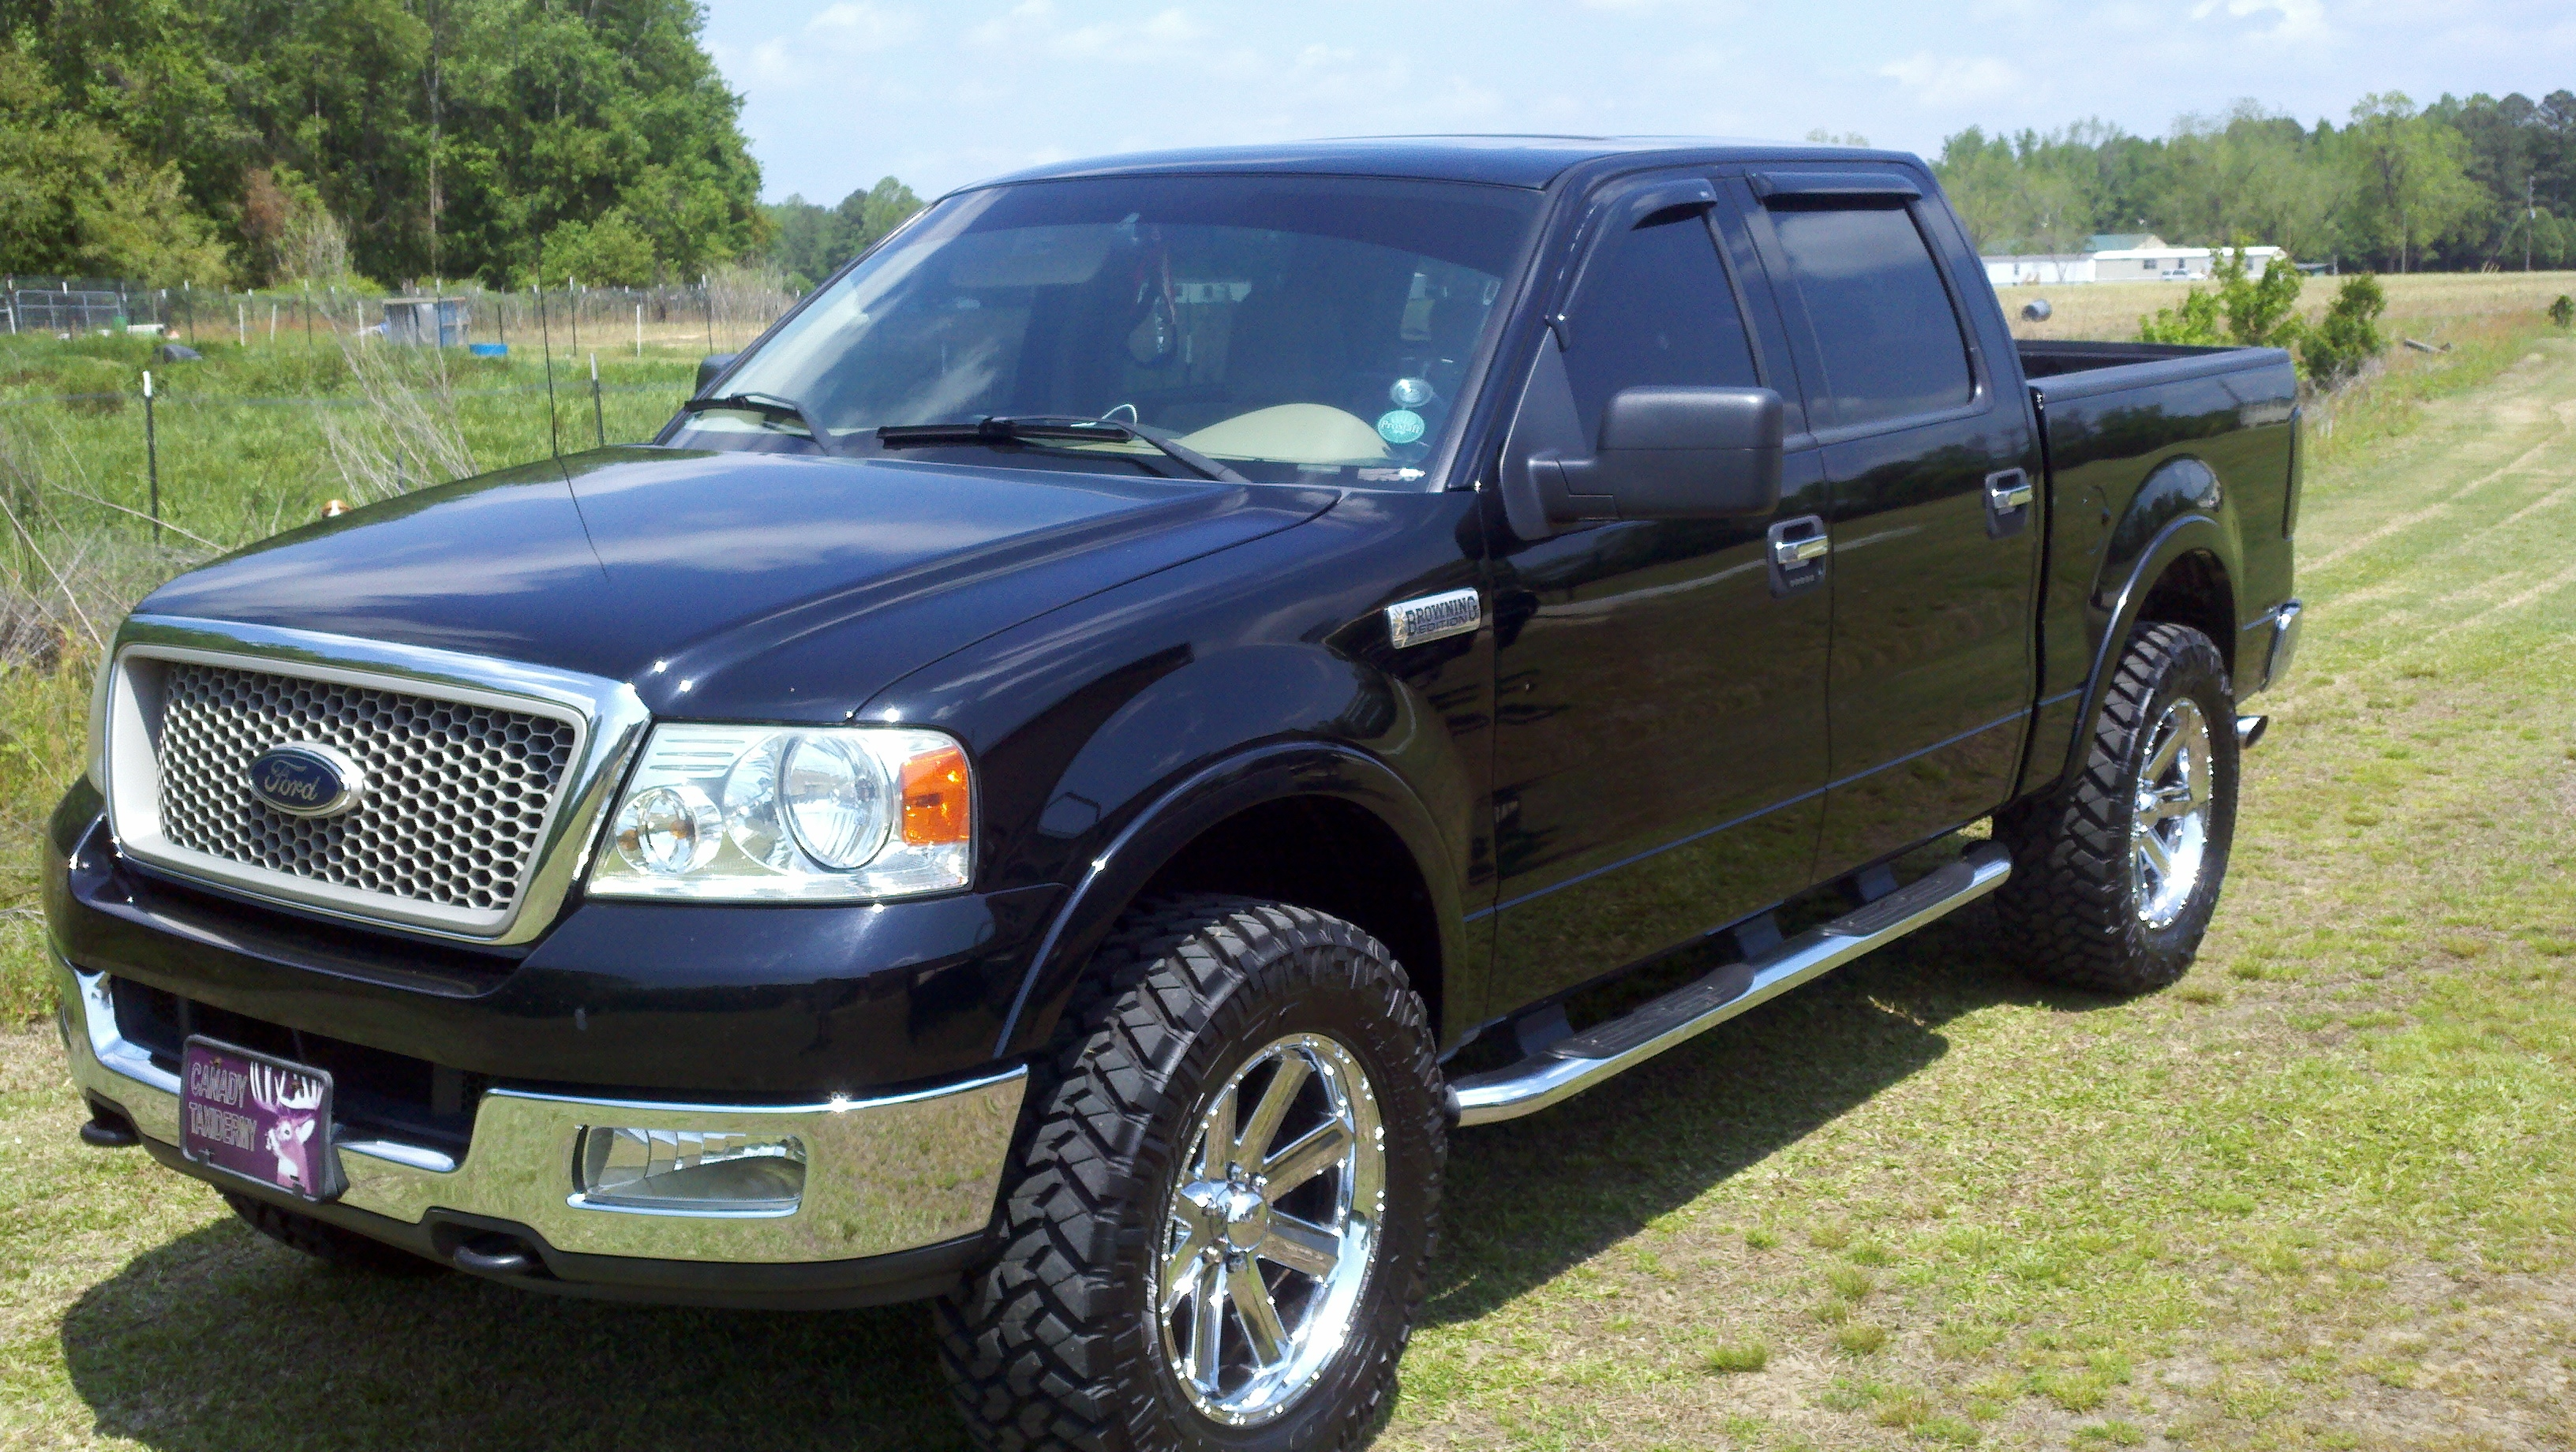 ikecan22 2004 ford f150 supercrew cab specs photos modification info at cardomain. Black Bedroom Furniture Sets. Home Design Ideas